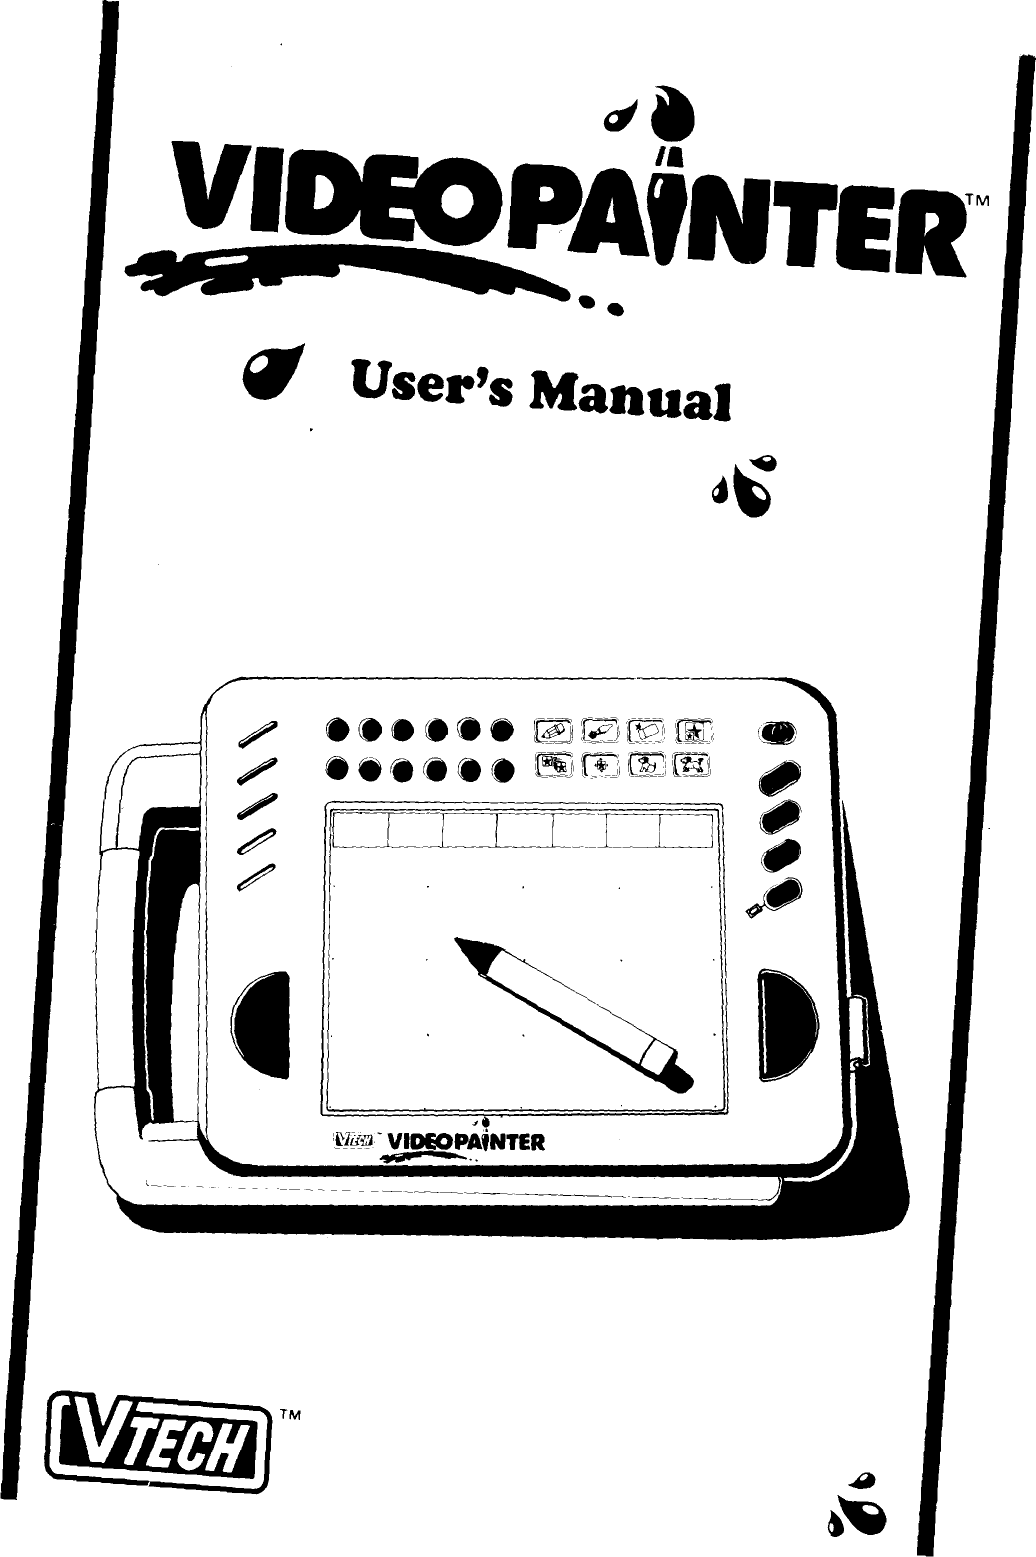 Vtech Video Painter Owners Manual